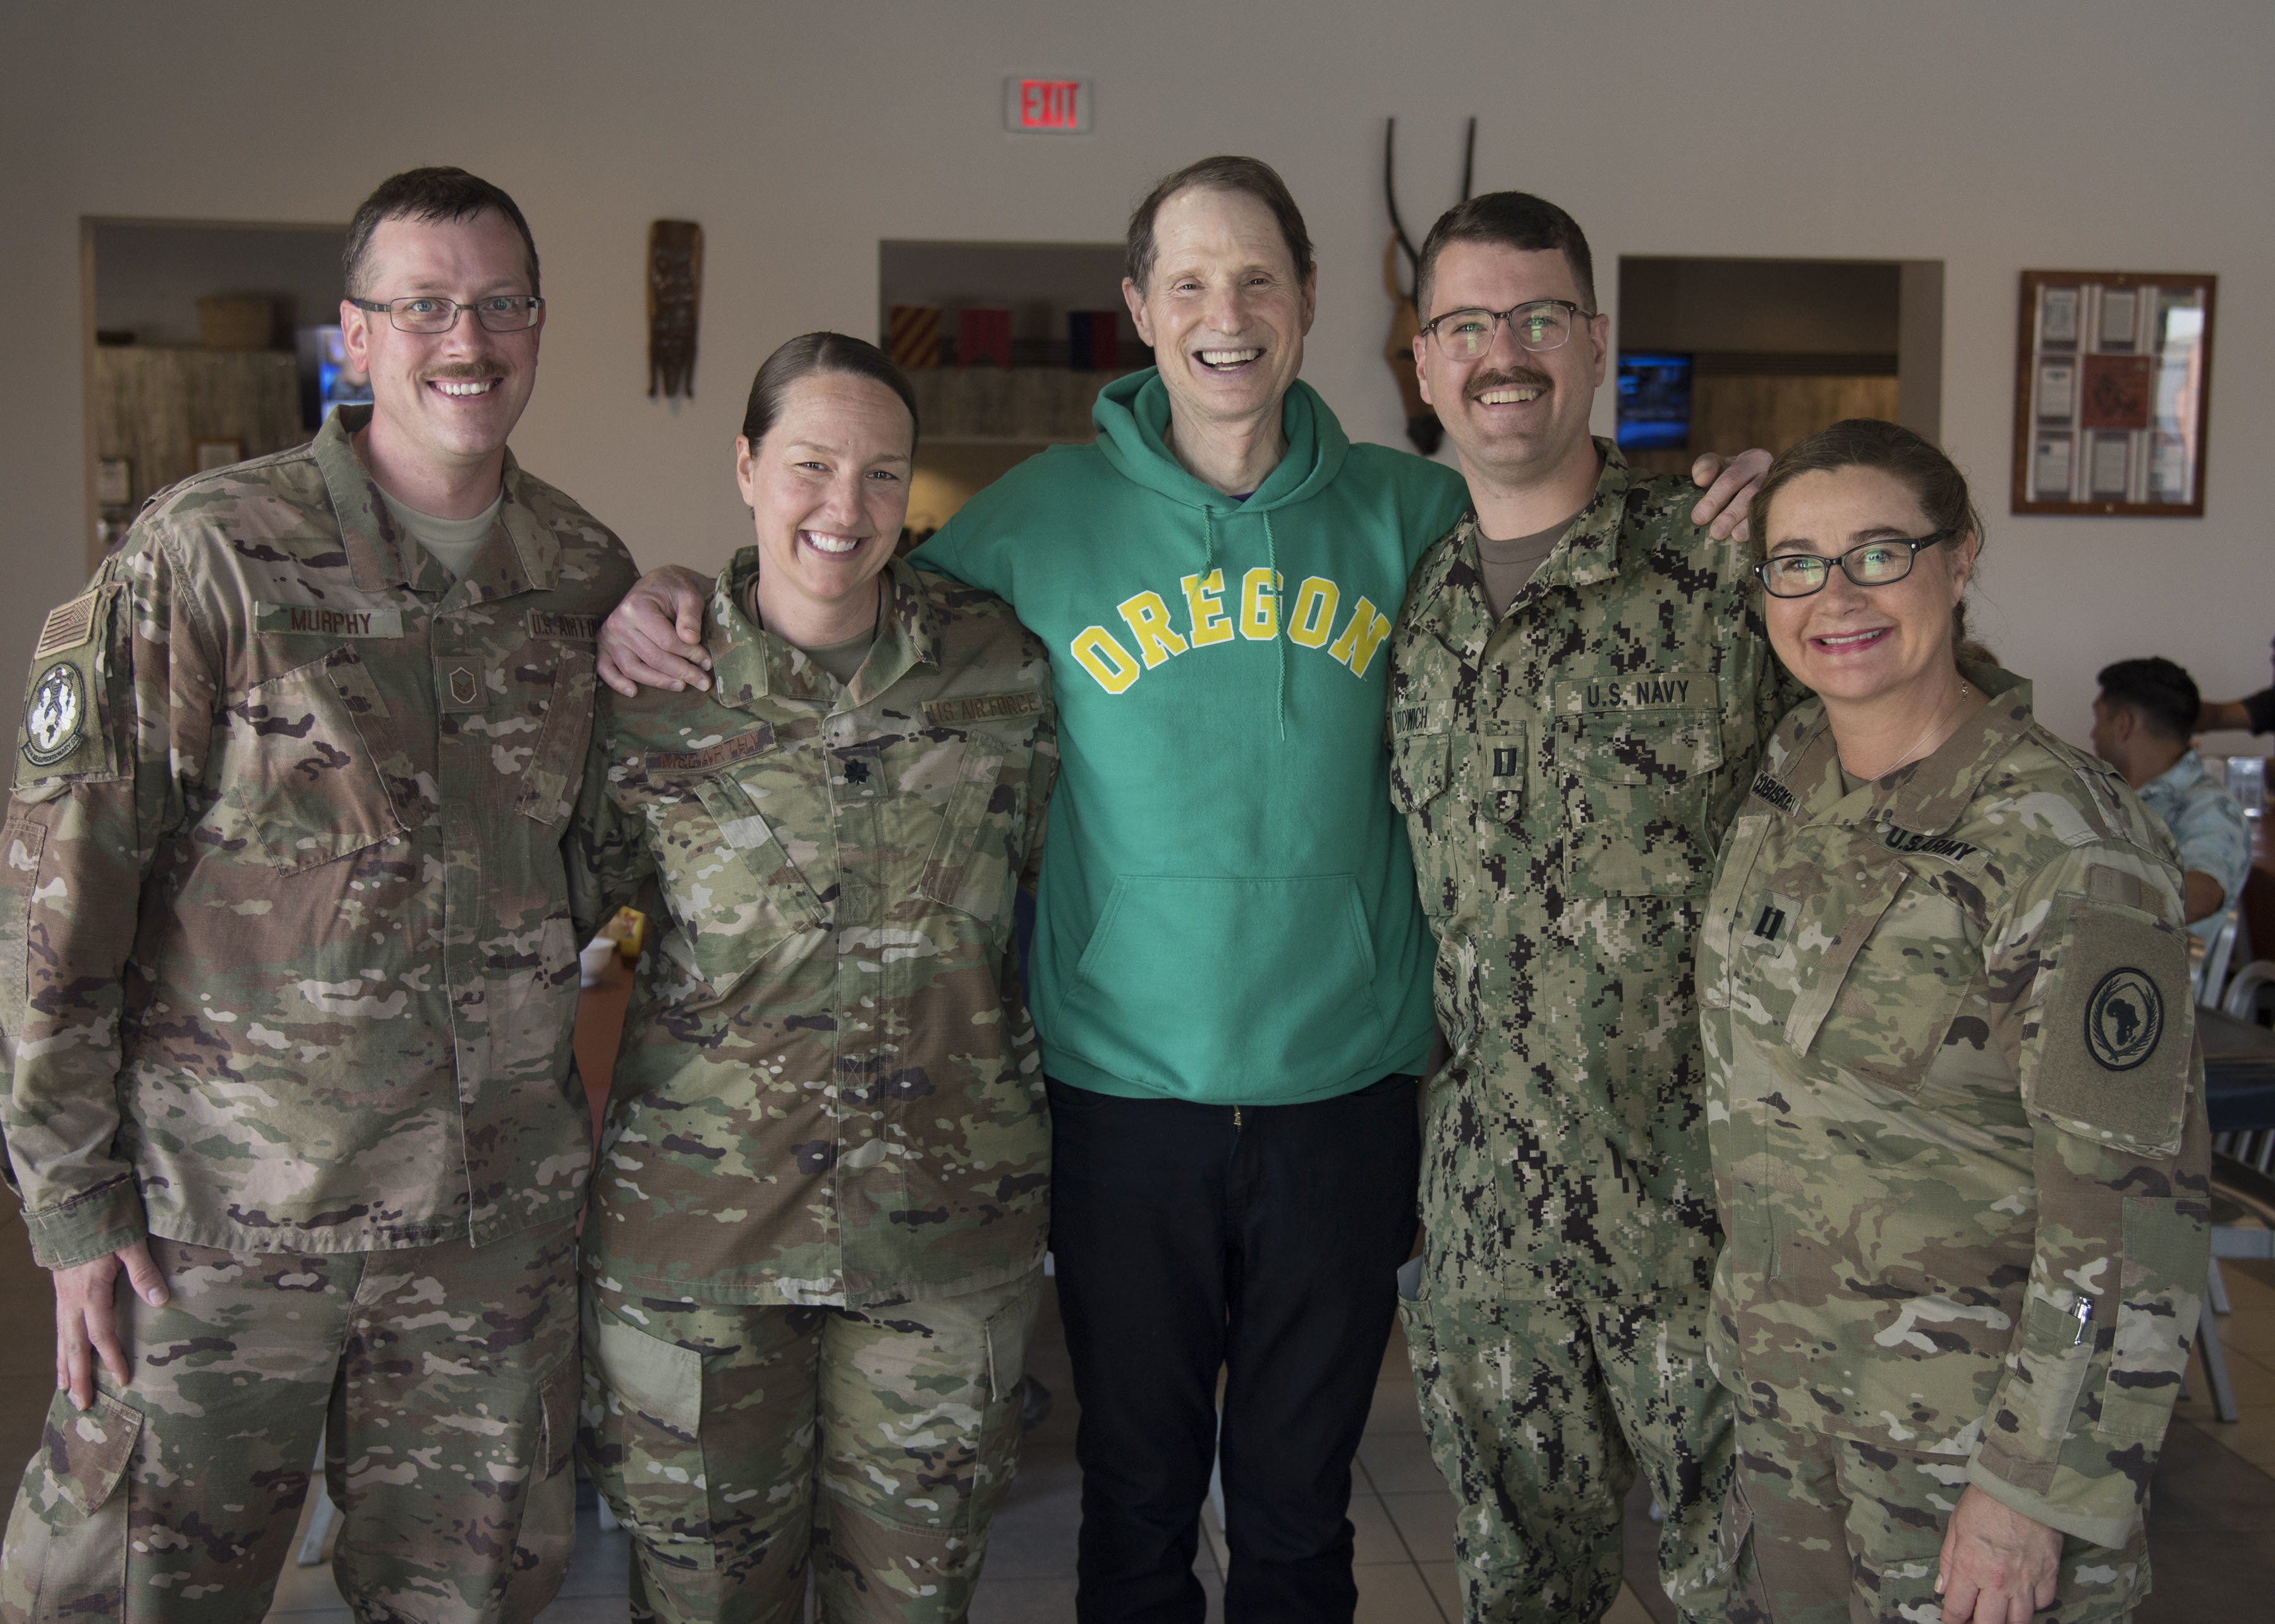 U.S. Sen. Ron Wyden (D-OR) poses for a photo with service members from Oregon deployed to Combined Joint Task Force-Horn of Africa (CJTF-HOA), Djibouti, April 26, 2019. Wyden traveled to Djibouti to visit U.S. forces and embassy officials and to meet with national defense leaders to understand the current posture of readiness and security. (U.S. Air Force photo by Senior Airman Kirsten Brandes)